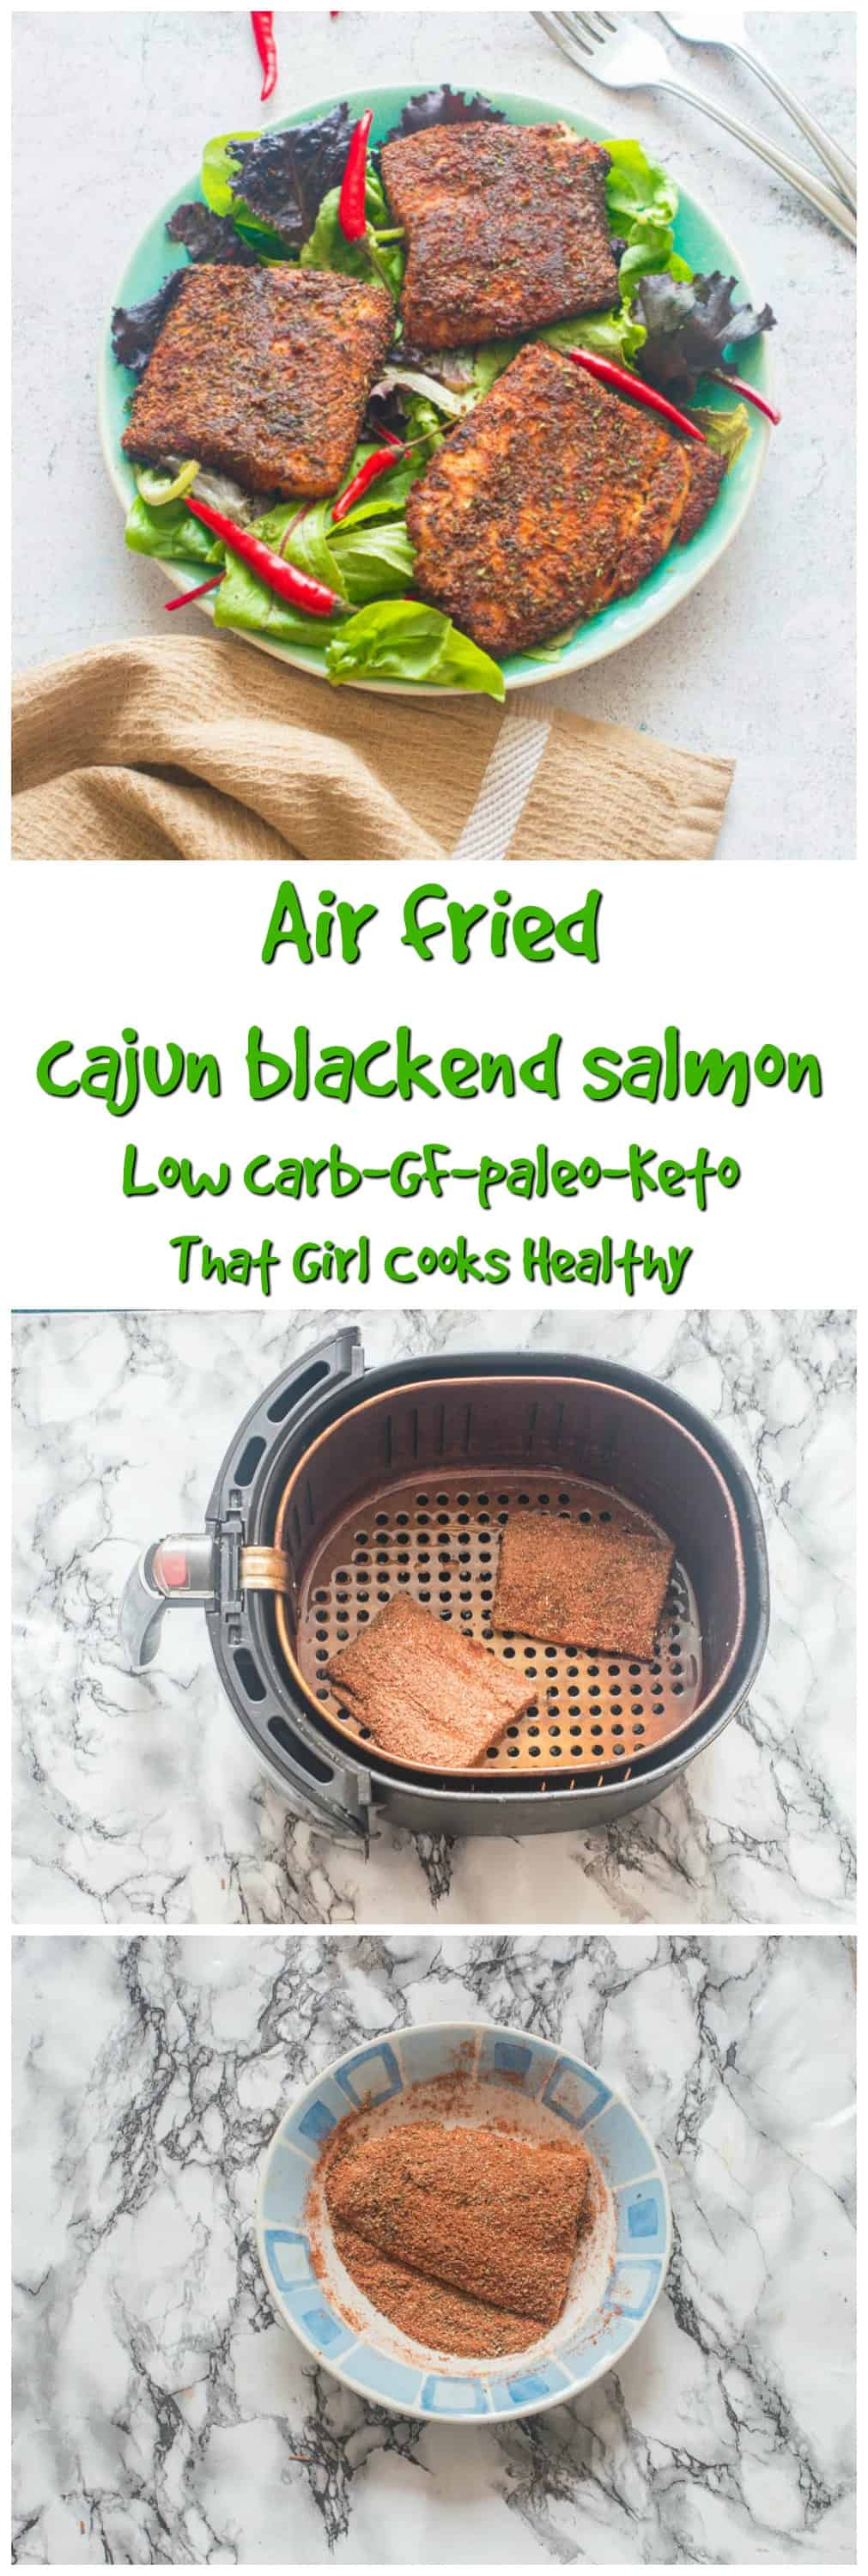 Make this simple air fried cajun blackened salmon recipe in less than 20 minutes